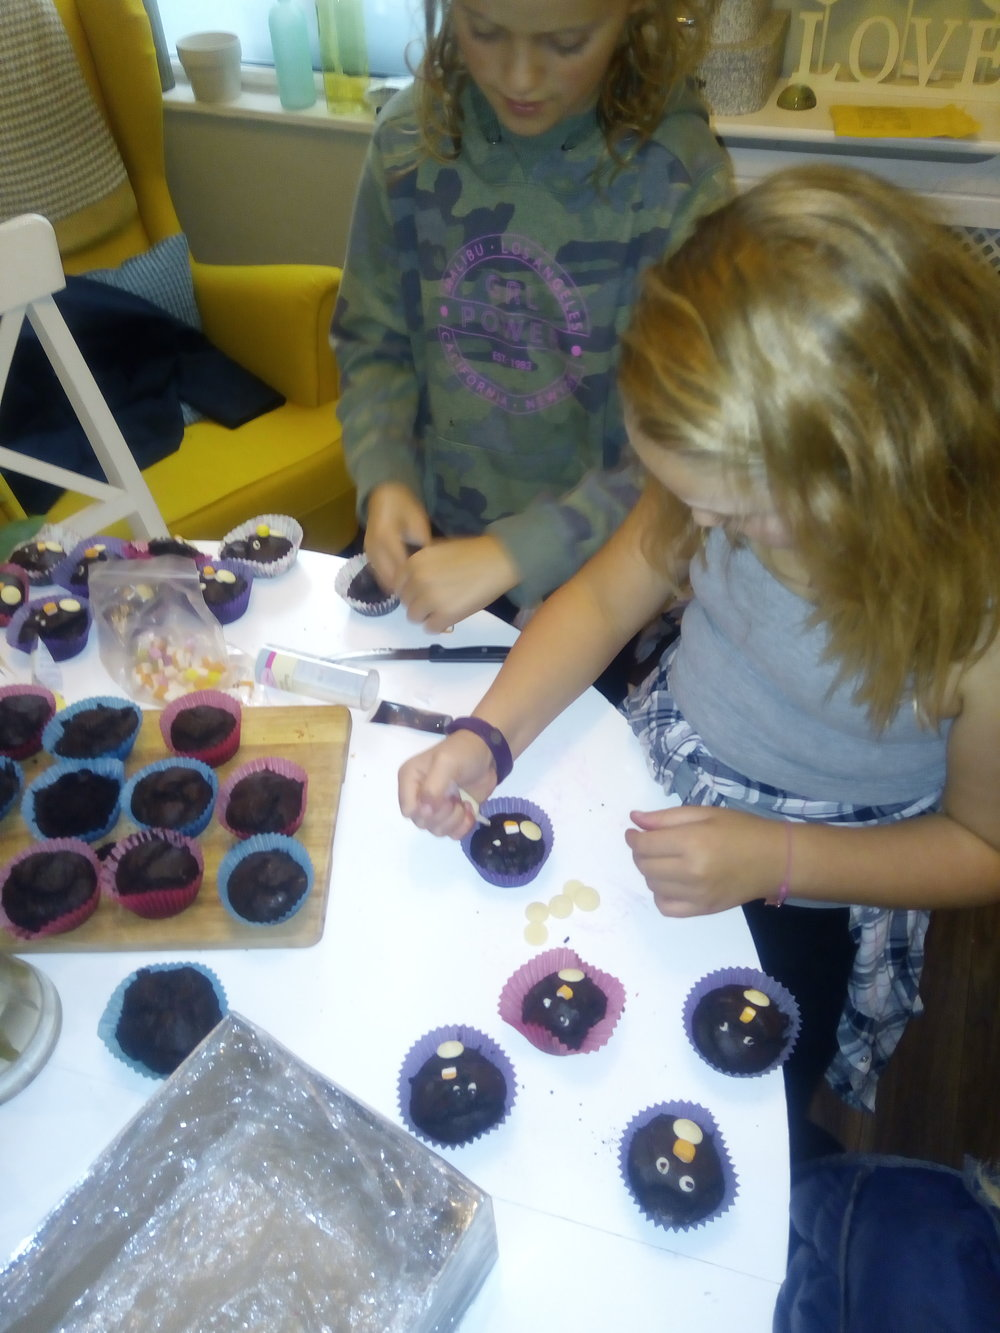 Abbey and Kitty both from 5BJ, busy decorating their chocolate penguin cupcakes.